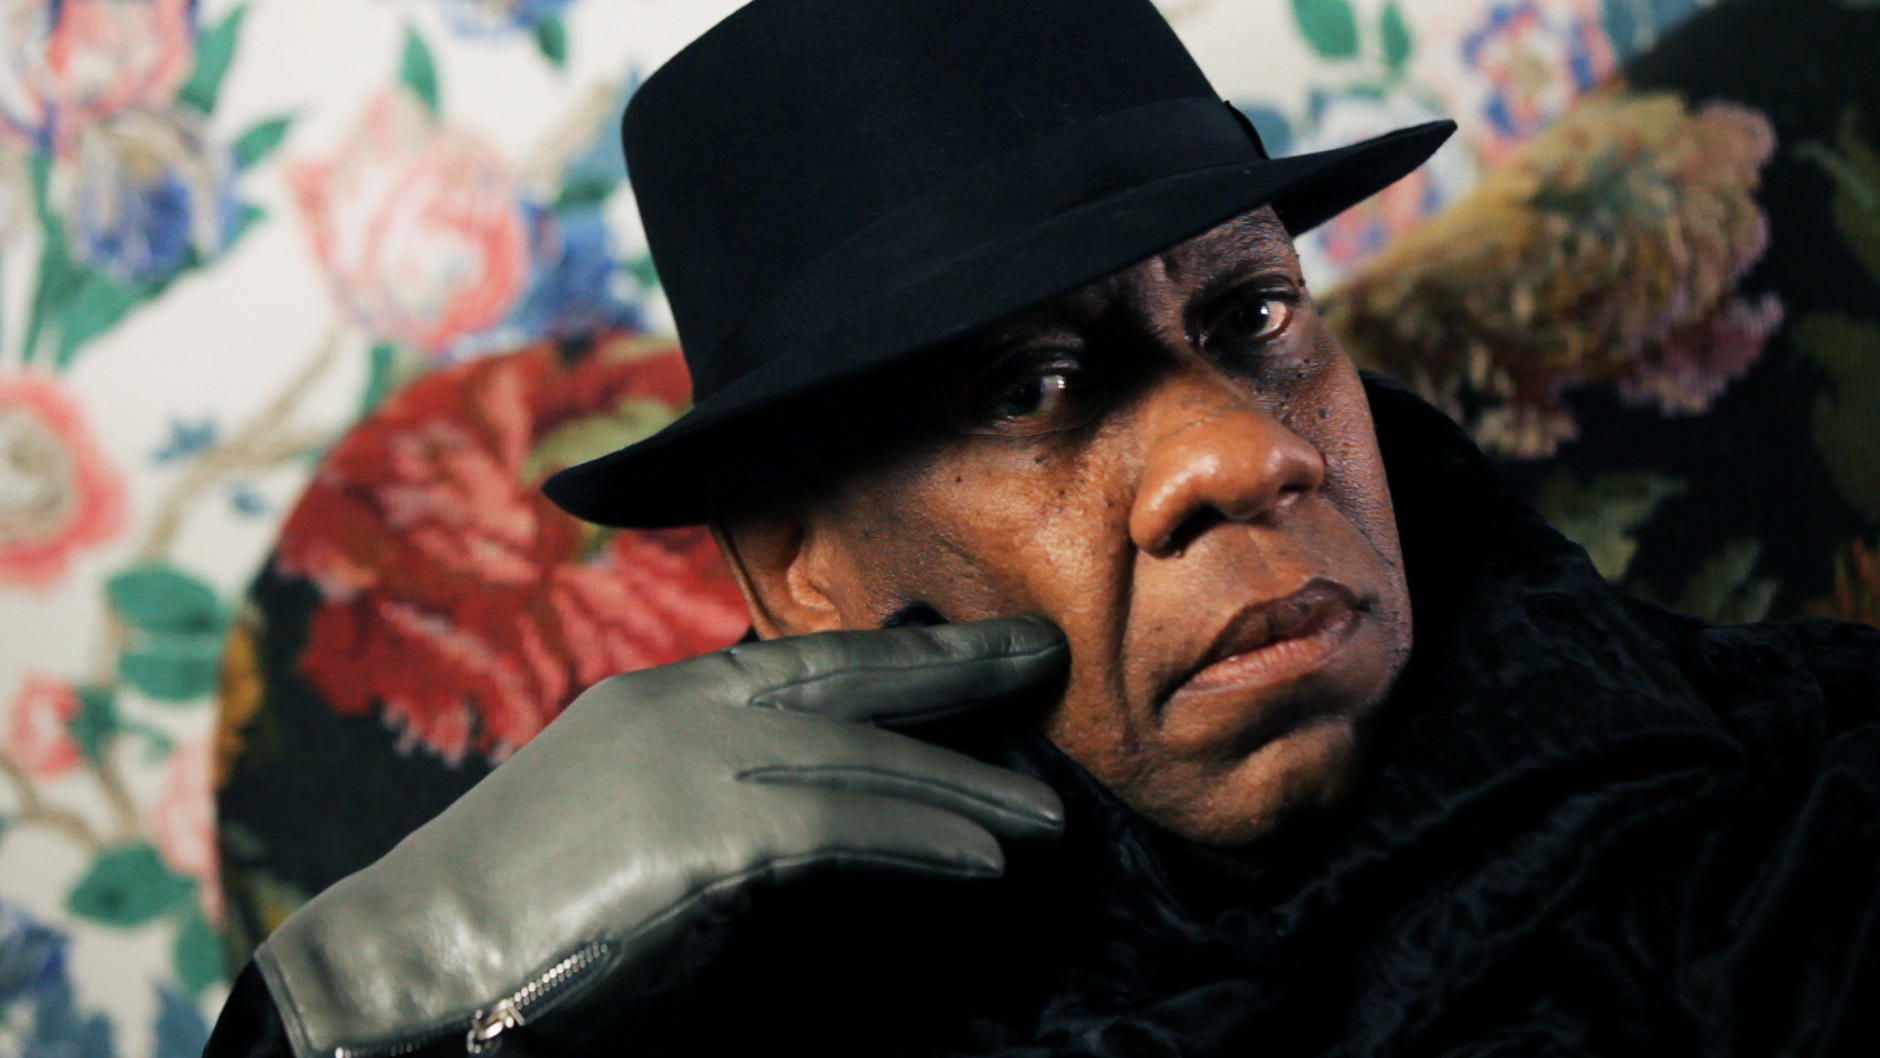 André Leon Talley in a fedora, gazing into the camera. It is a very close portrait and his gray-gloved hand is on his cheek.